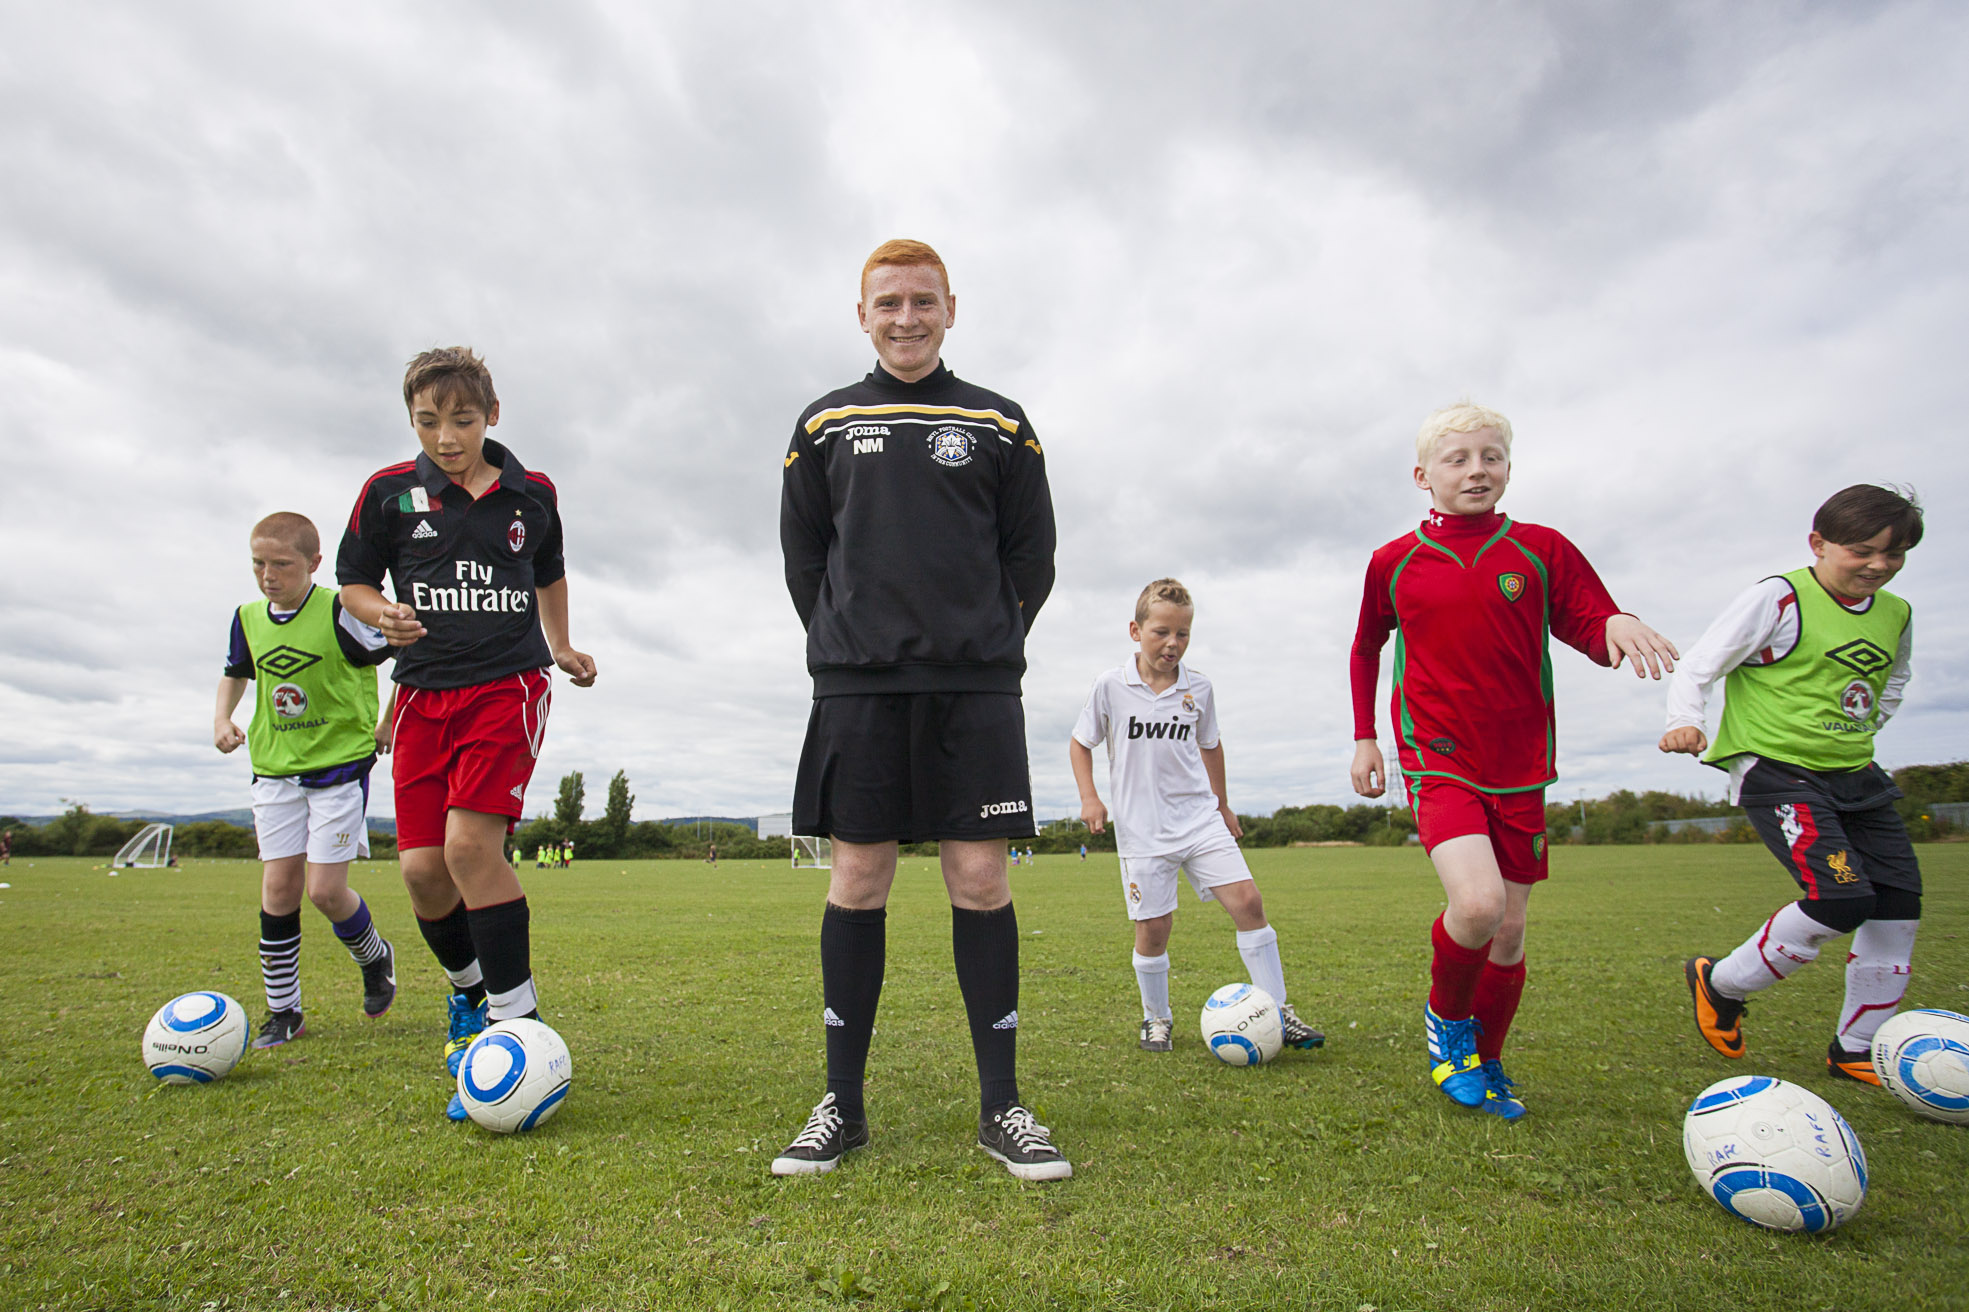 Vauxhall Fun Football Grant Scheme